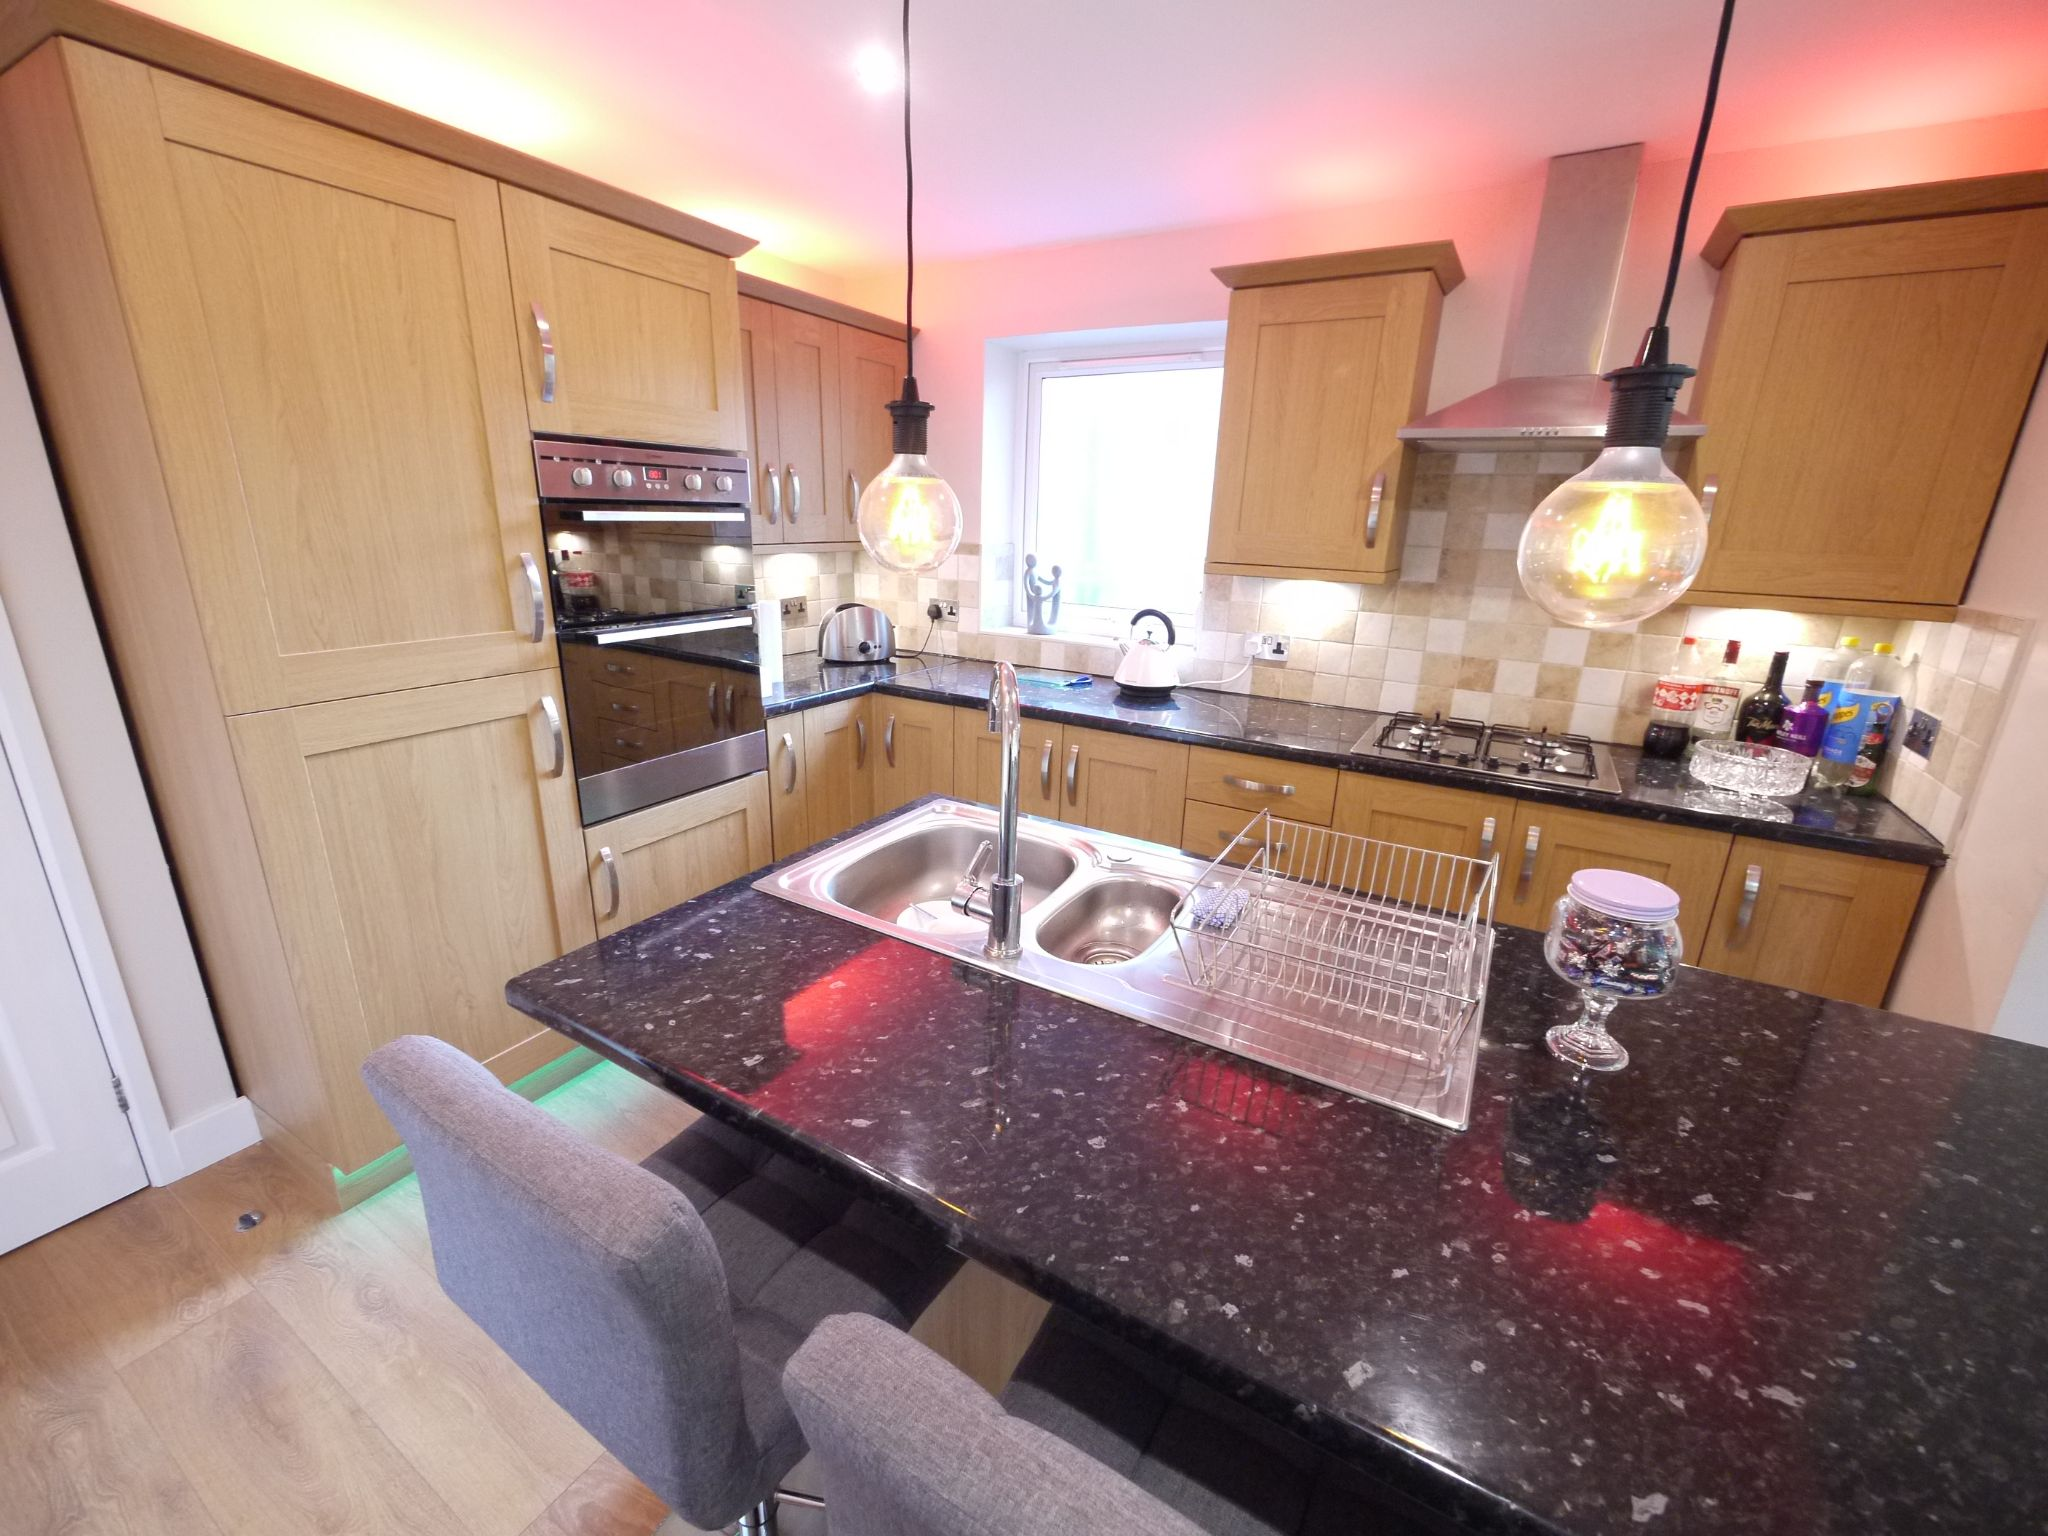 4 bedroom semi-detached house SSTC in Brighouse - Dining Kitchen 2.